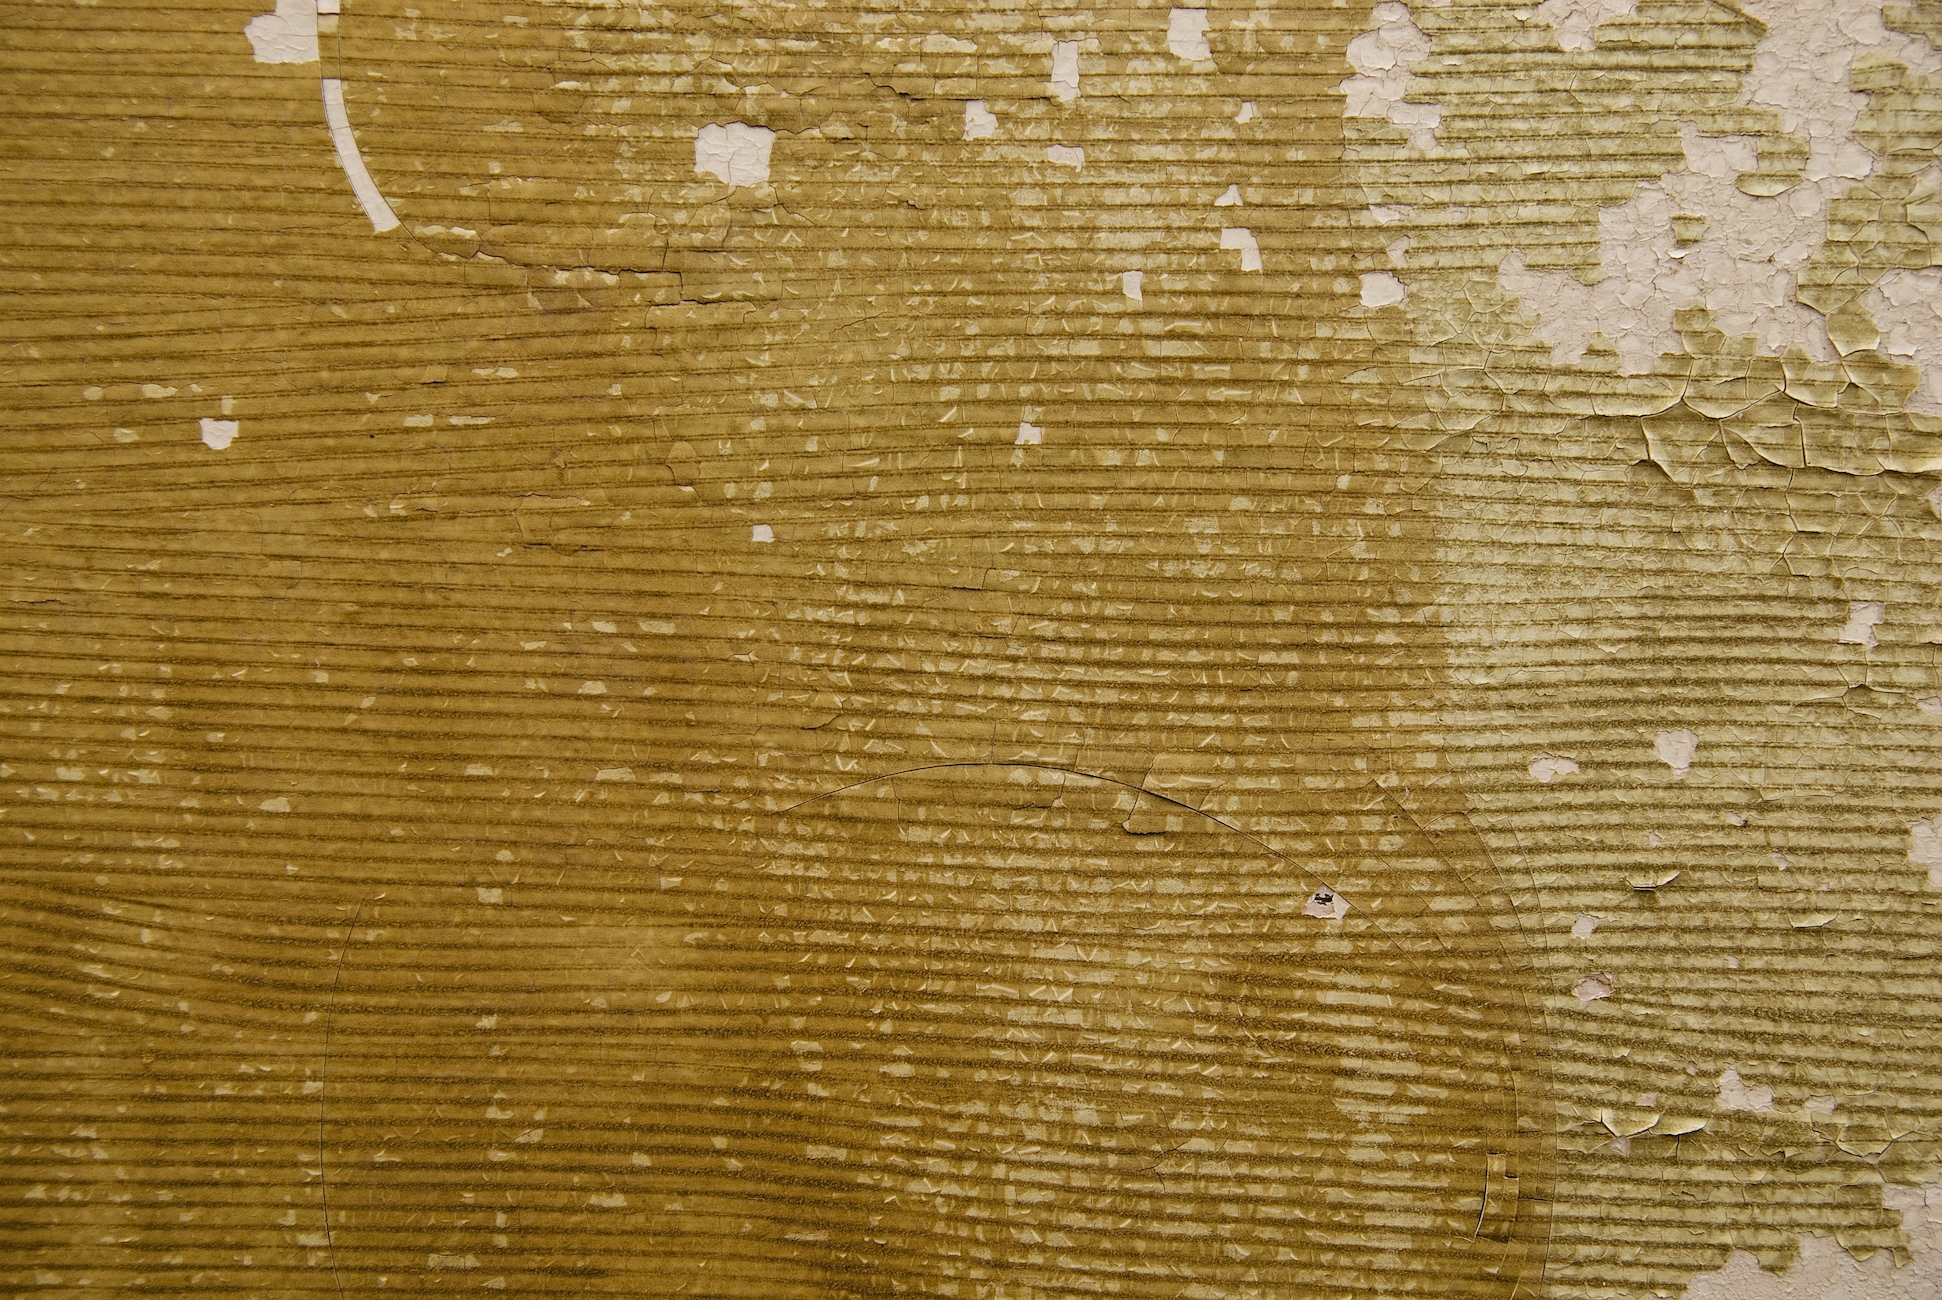 Amazing photo of teXture Wood Panel Crackel 002 This is a free texture th  with #4F3708 color and 1942x1300 pixels